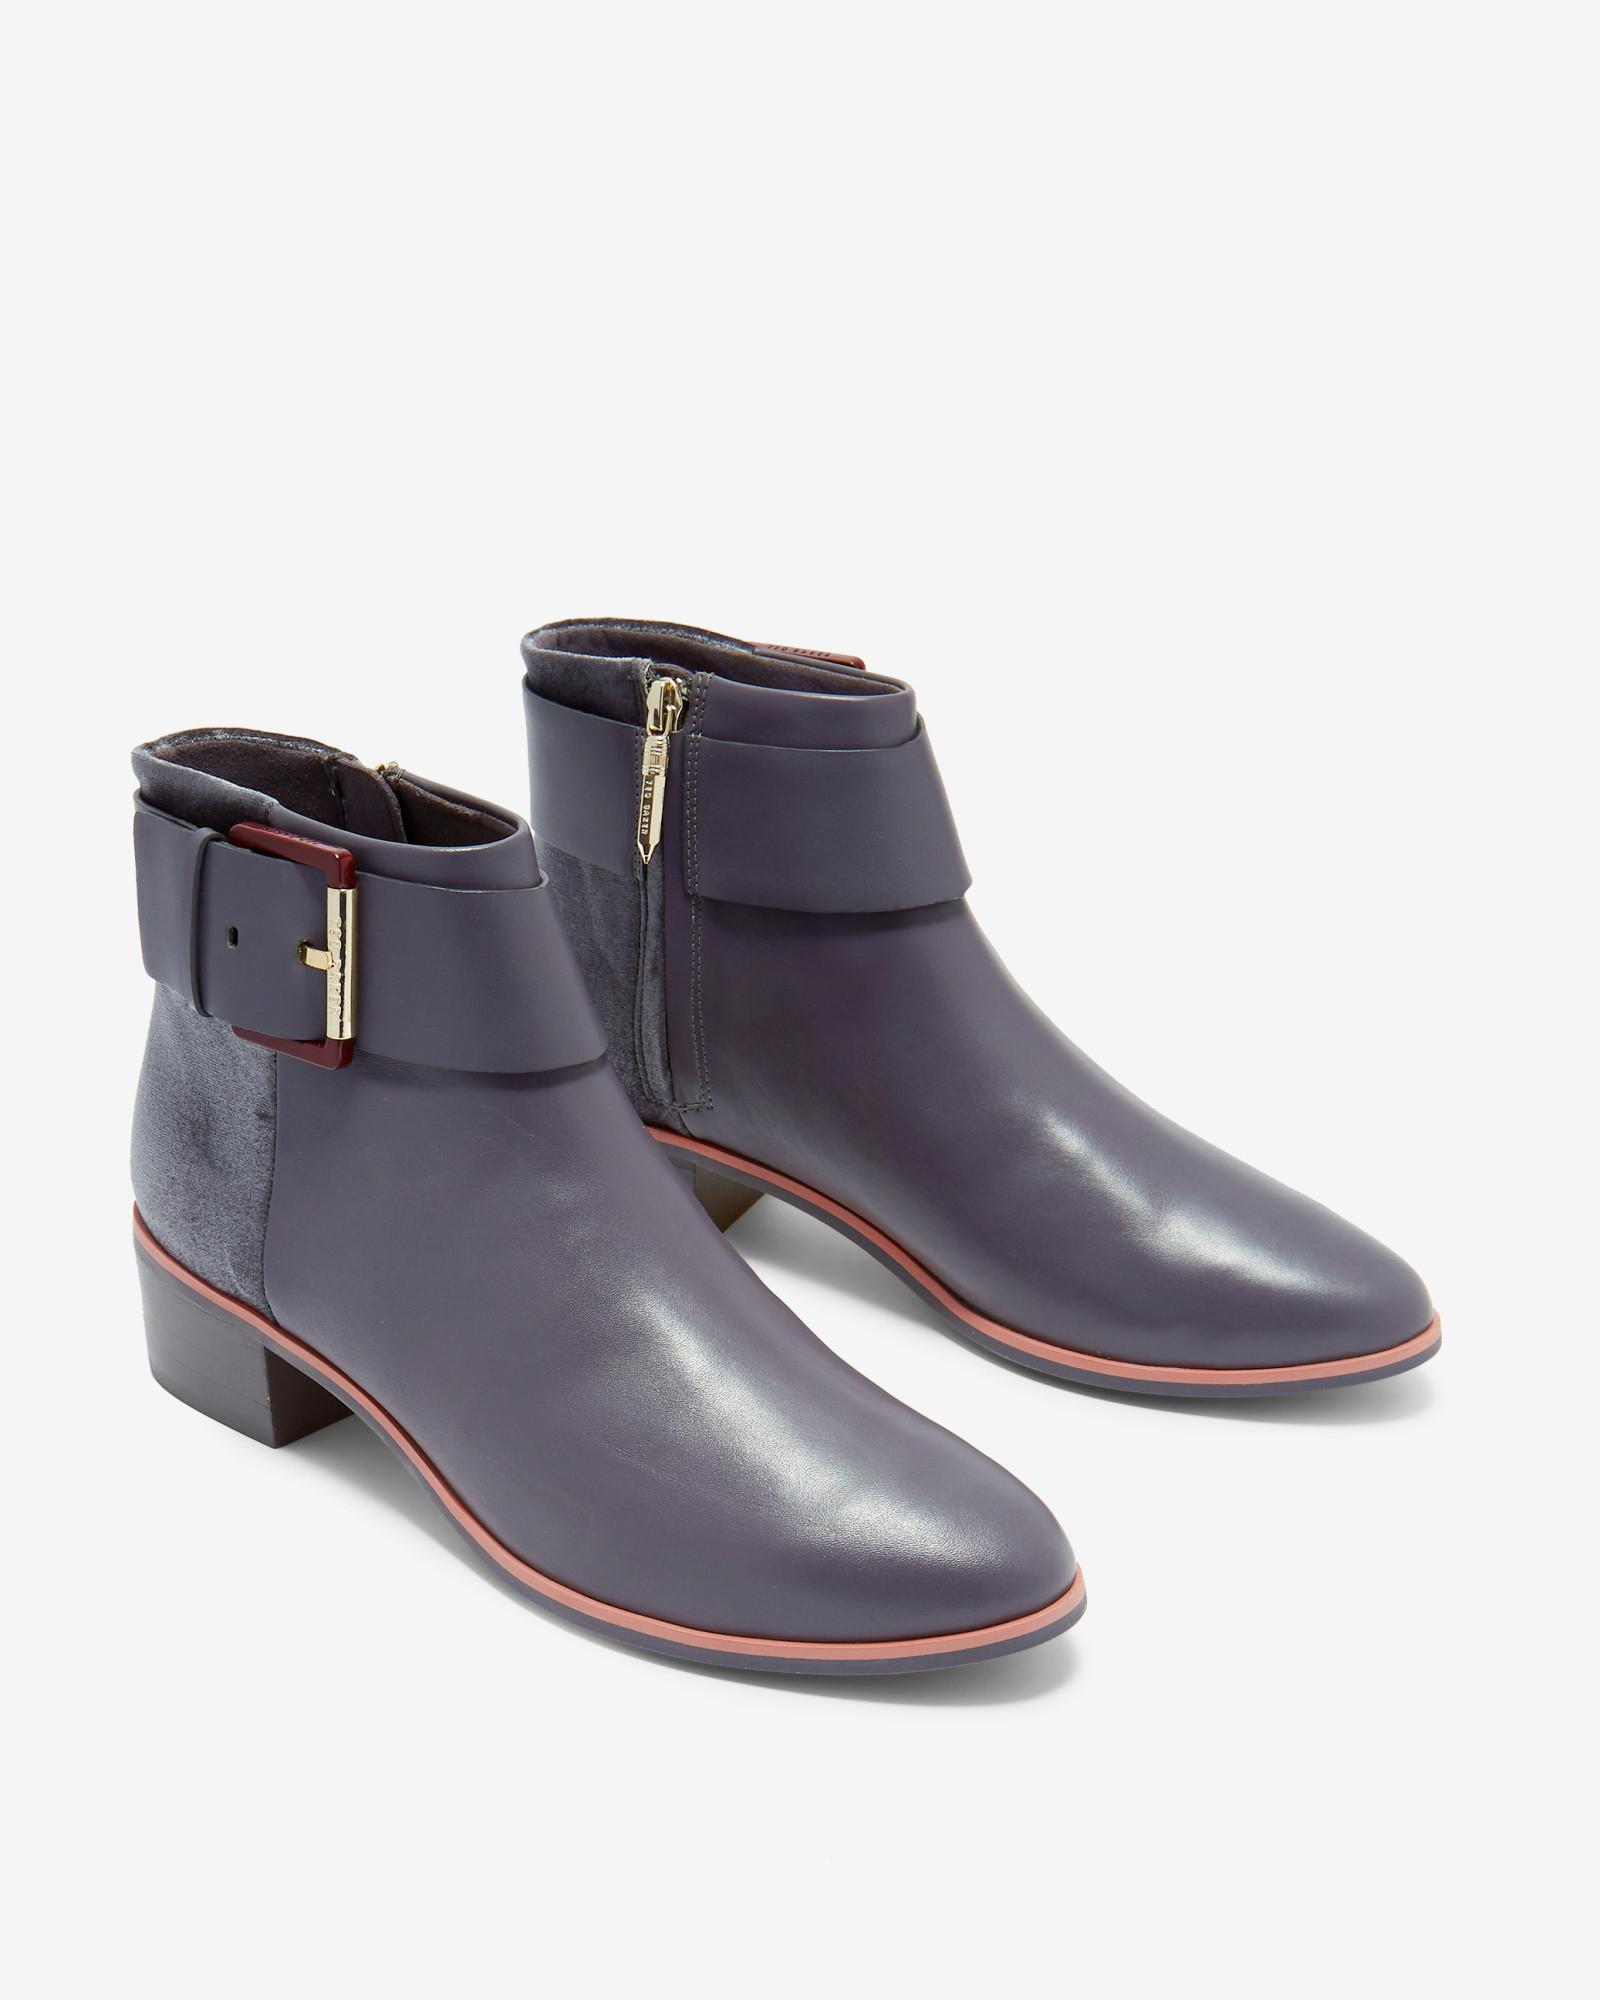 6fcba5c9d3aa Lyst - Ted Baker Leather Ankle Boots in Gray